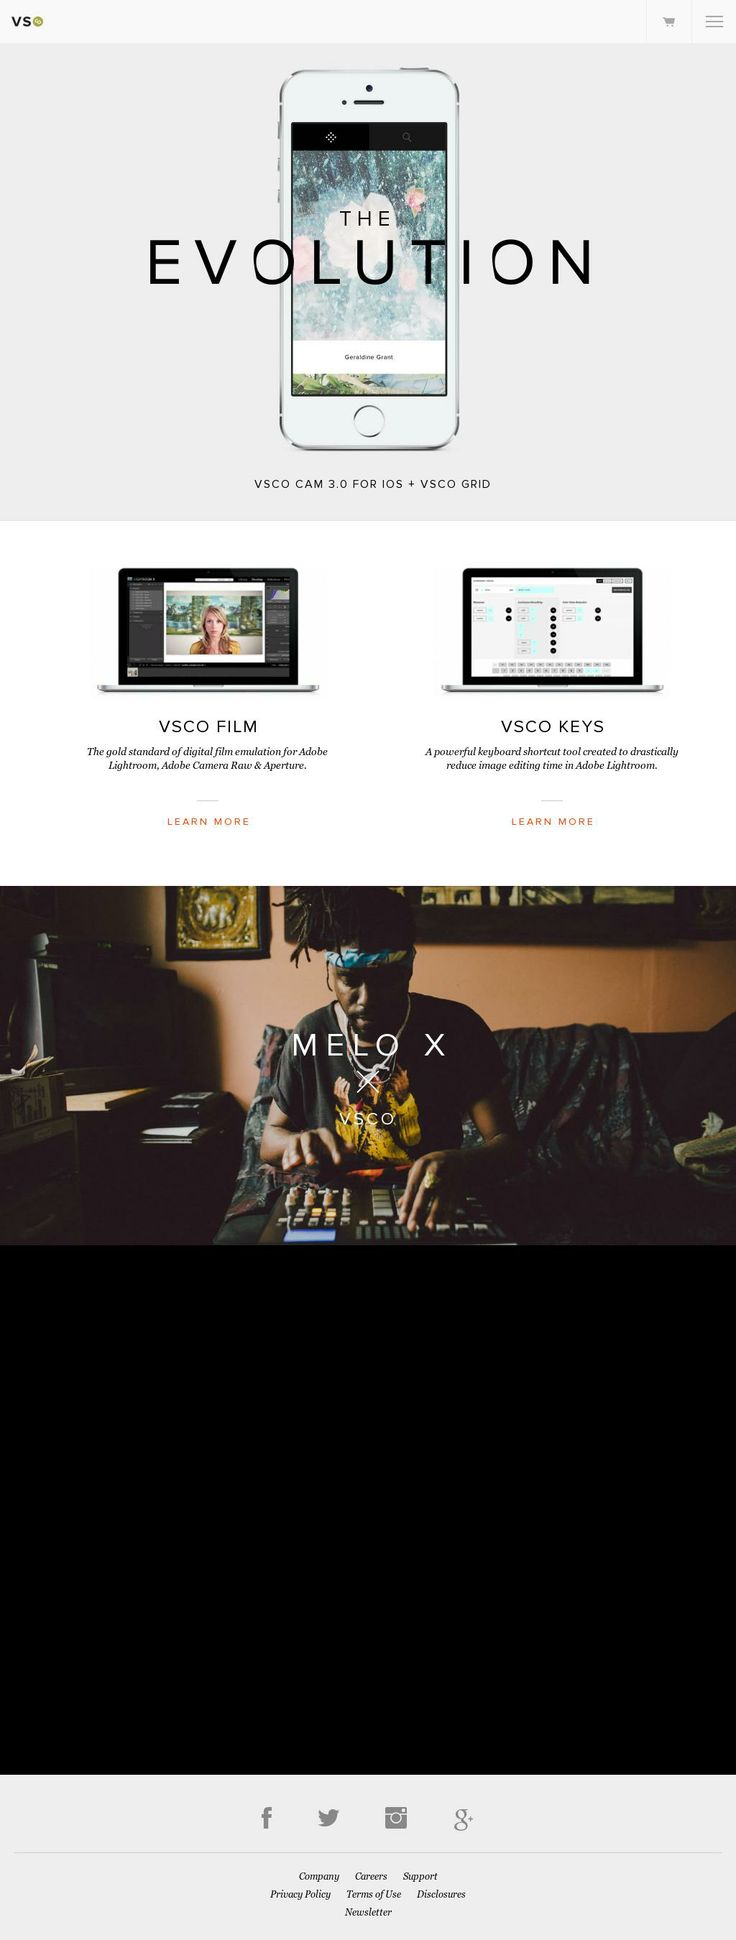 The website 'https://vsco.co/' courtesy of @Pinstamatic (http://pinstamatic.com)